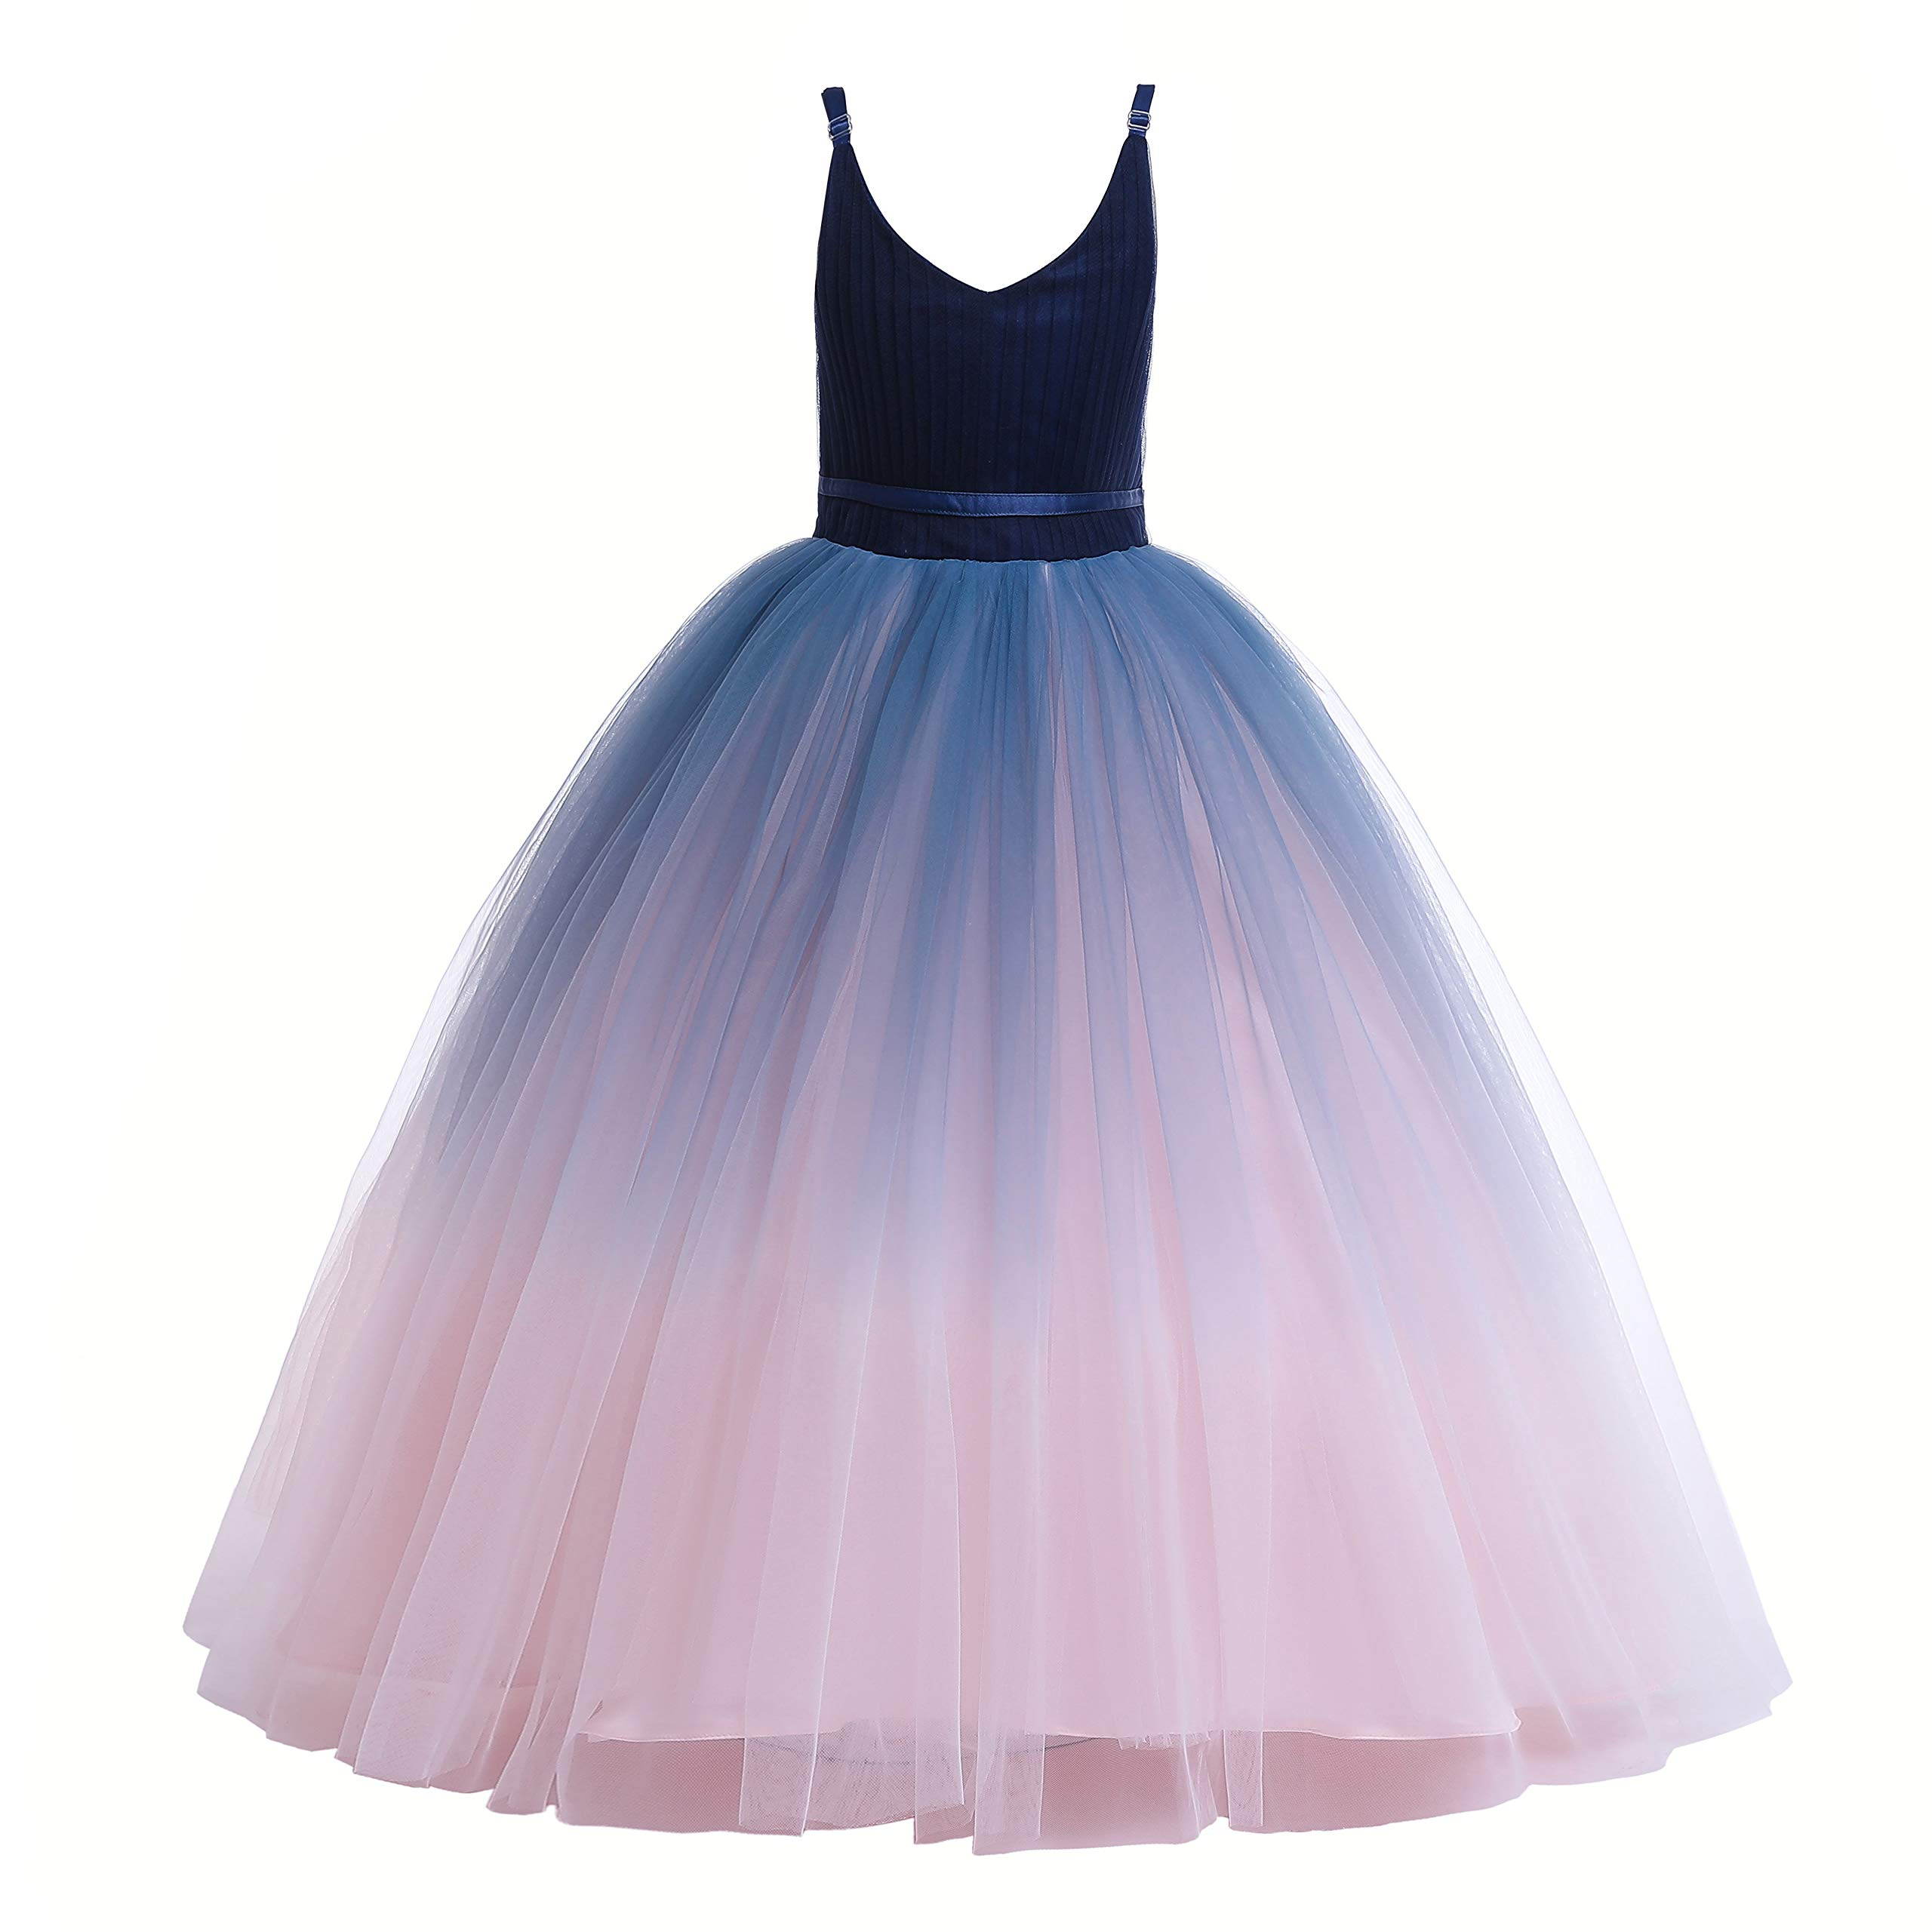 Glamulice Girls Lace Bridesmaid Dress Long A Line Wedding Pageant Dresses Tulle Party Gown Age 3-16Y (7-8Y, Pink/Navy Blue)